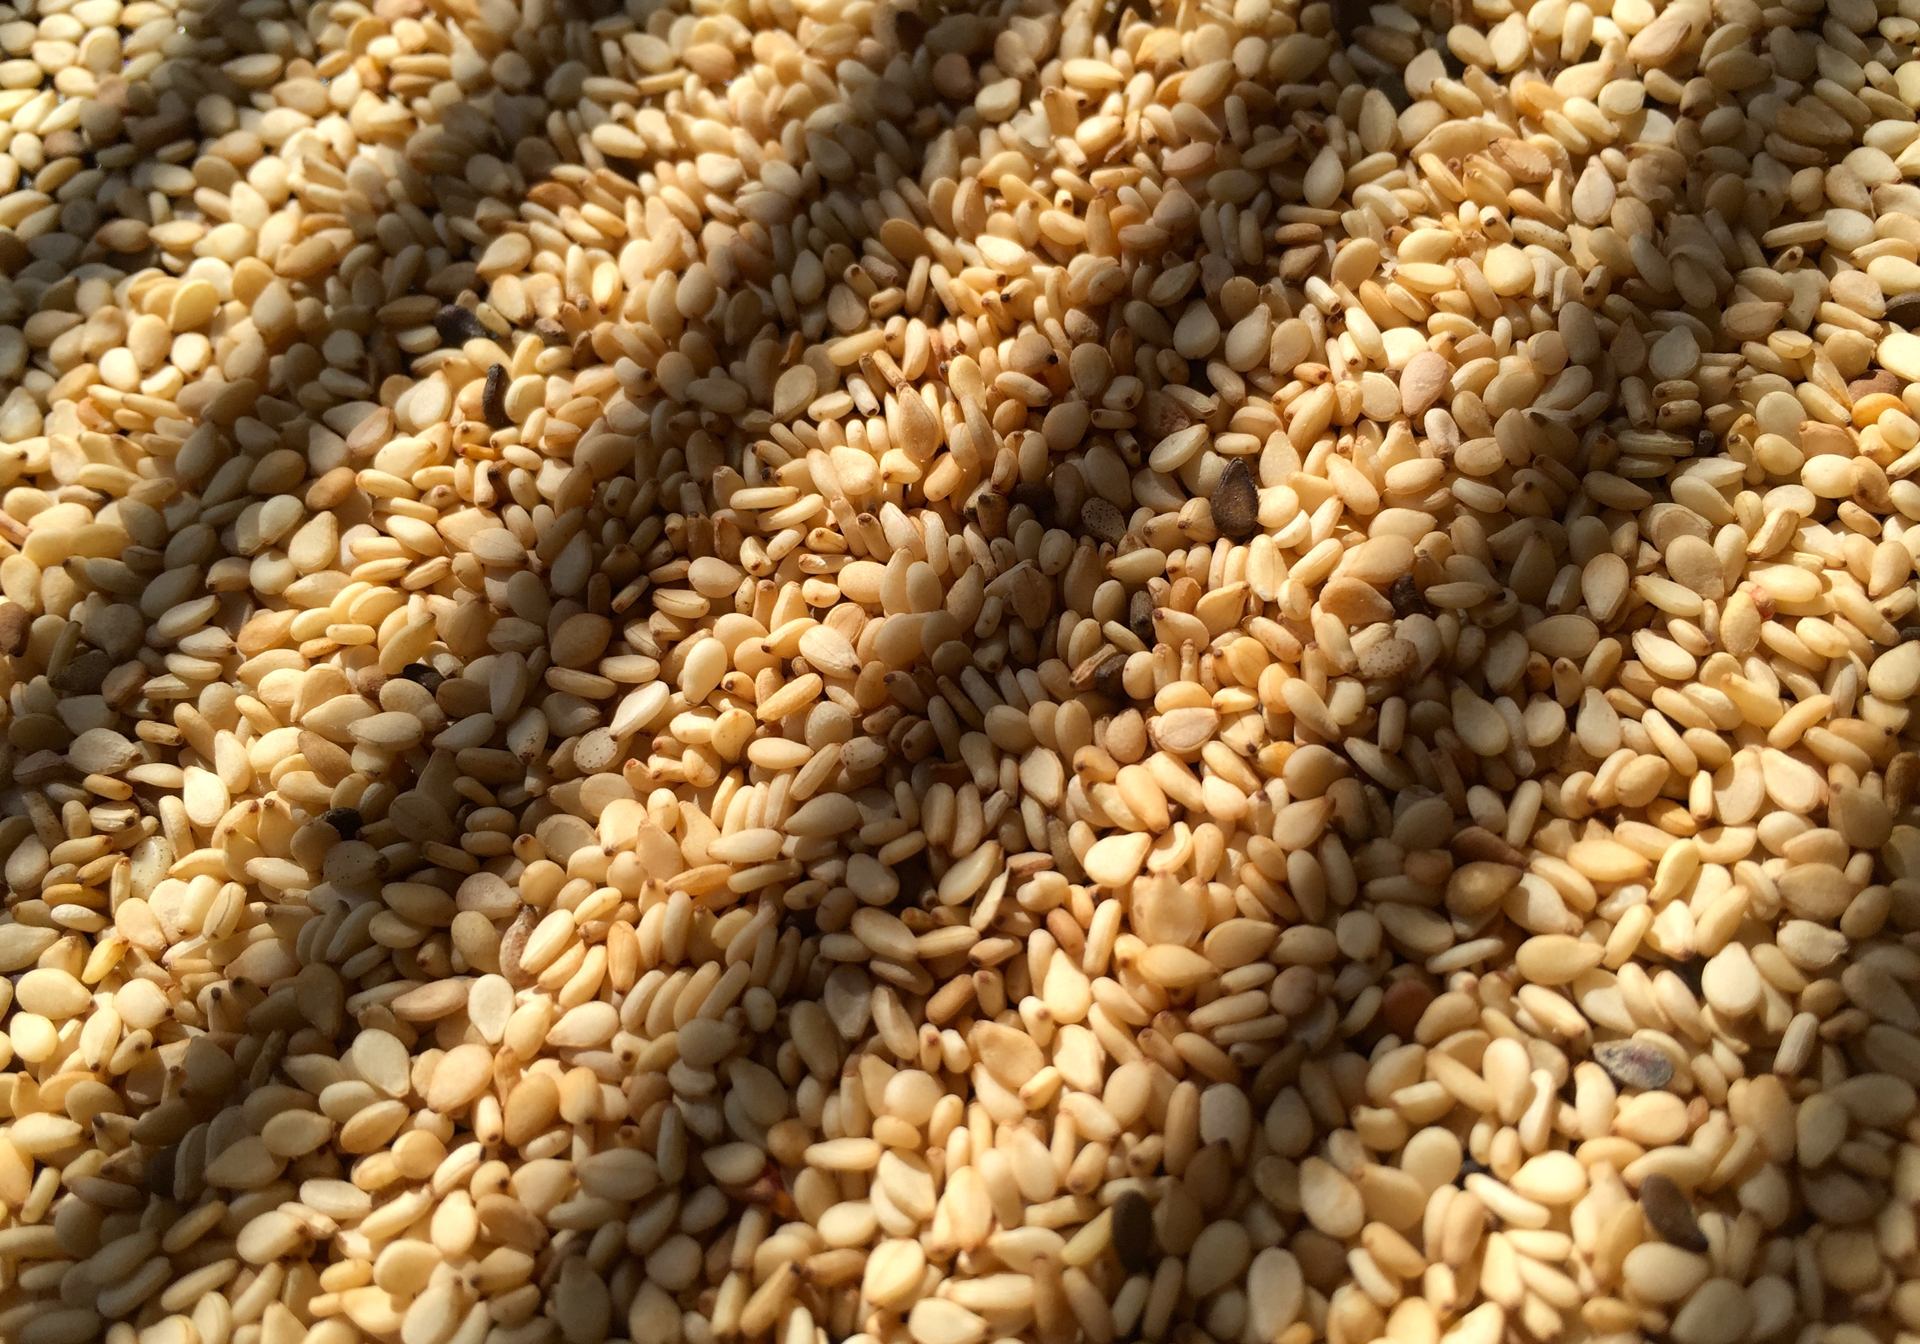 Sesame Seeds. Photo: Lisa Landers